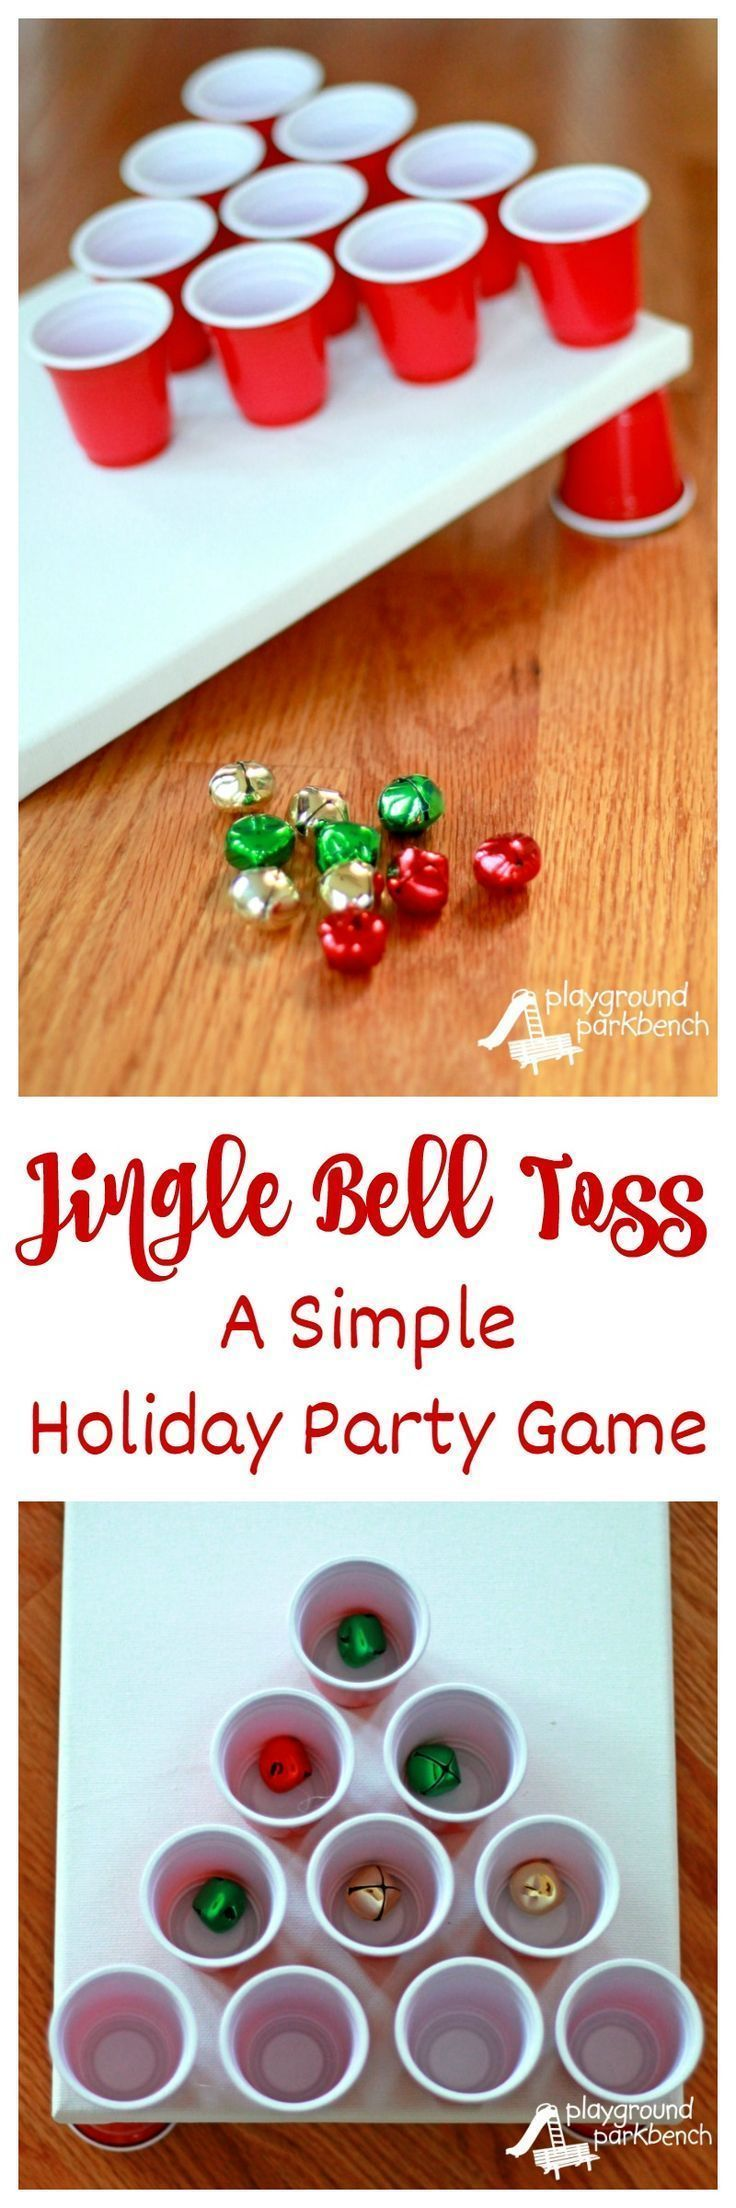 Lovely Elementary School Christmas Party Ideas Part - 12: Holiday Party Games - Jingle Bell Toss. School Christmas ...